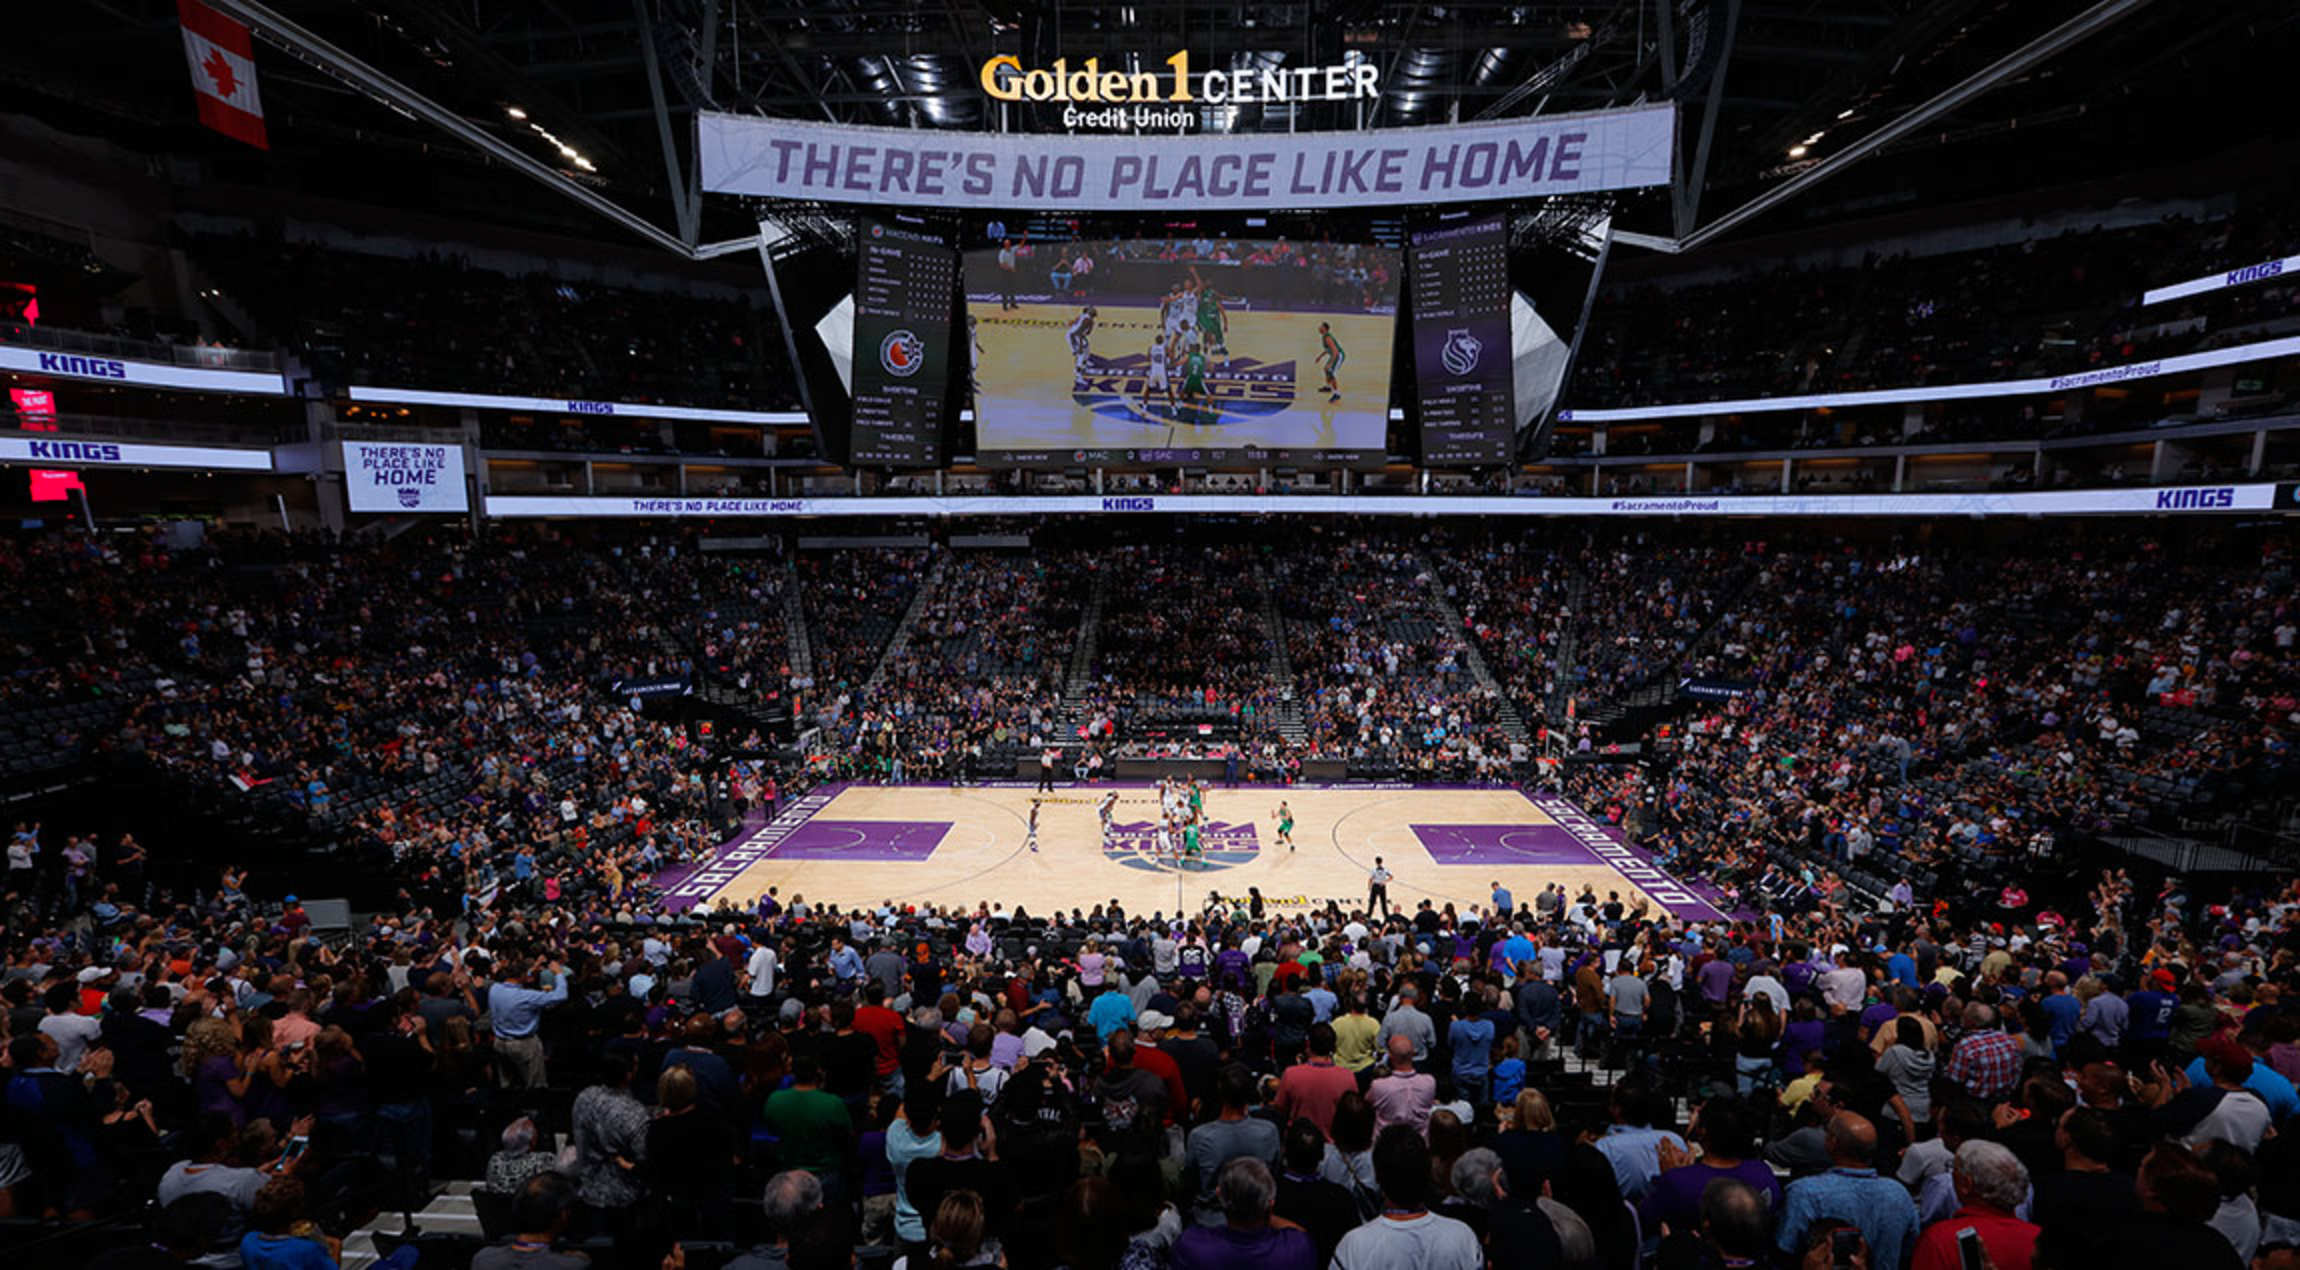 grass valley 4k gear plays key role at sacramento kings u2019 golden 1 center